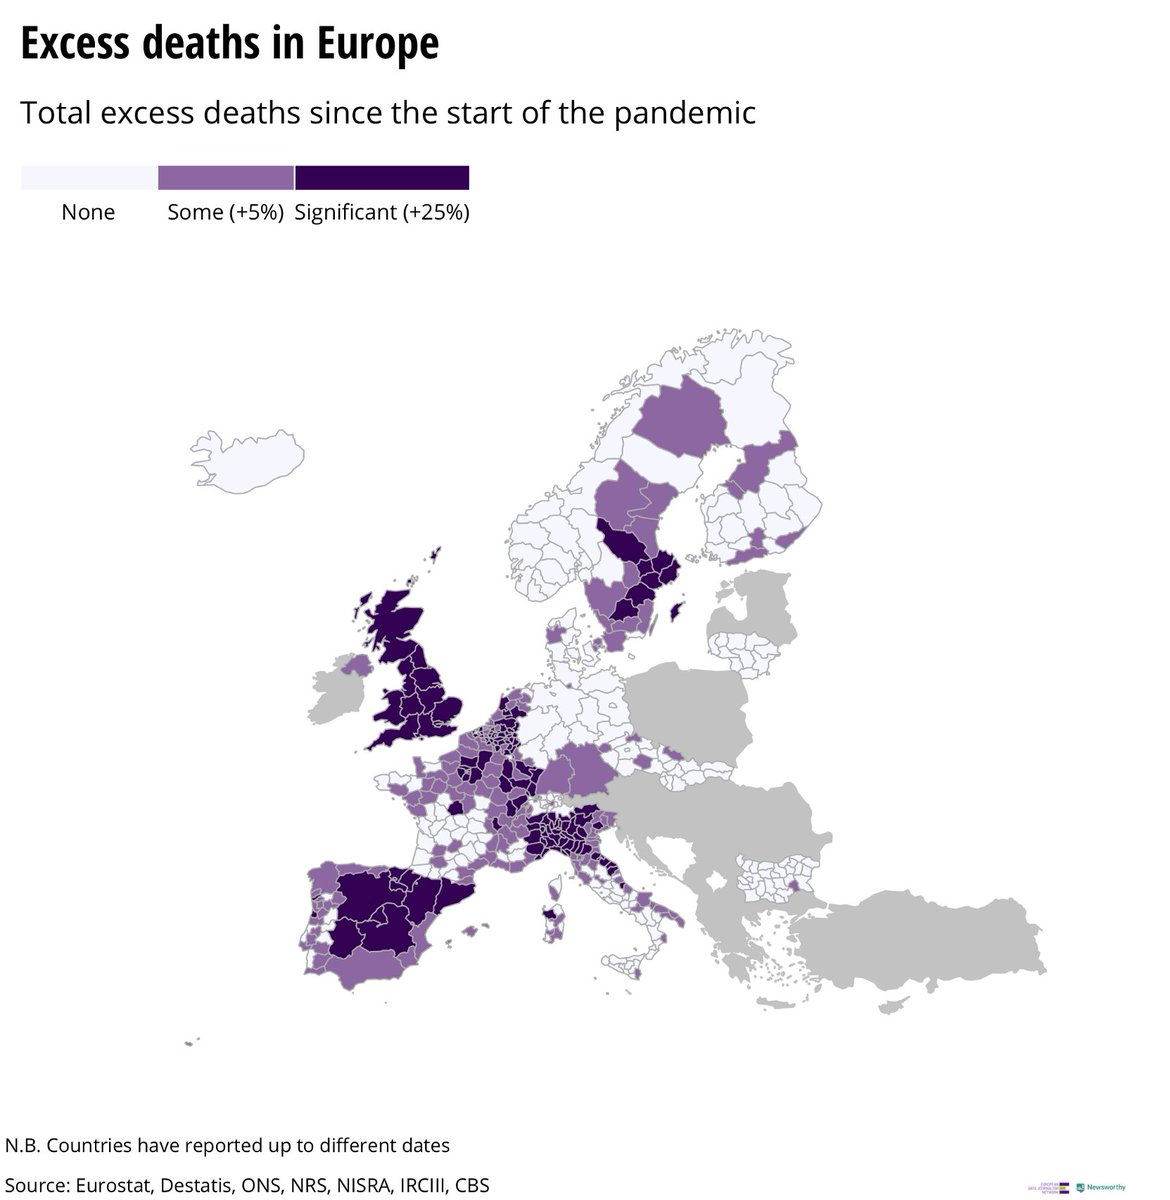 Excess deaths per region since the beginning of the pandemic